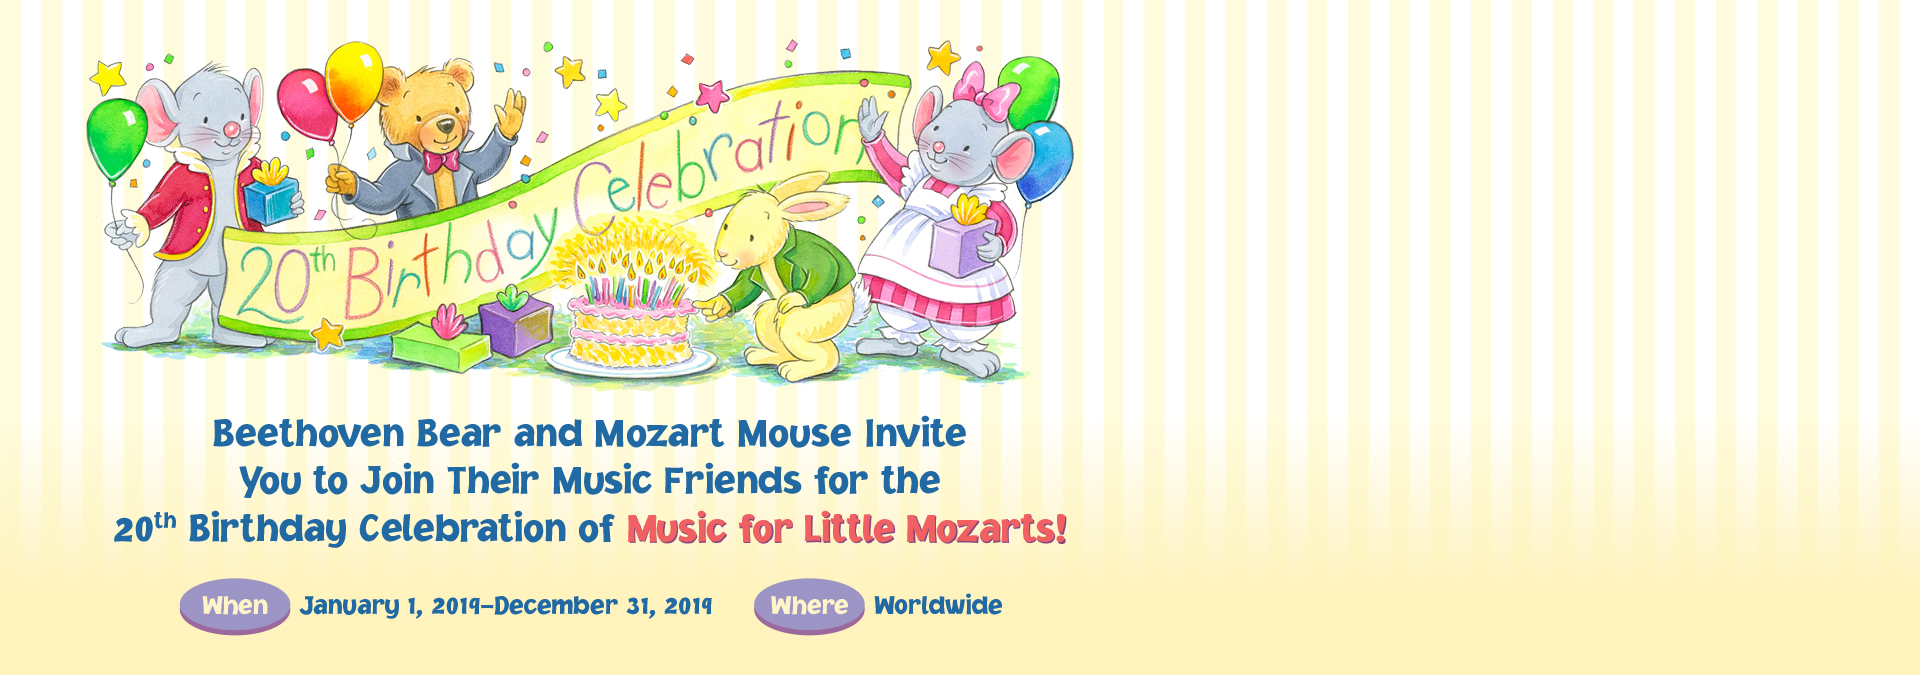 Music for Little Mozarts 20th Birthday Banner